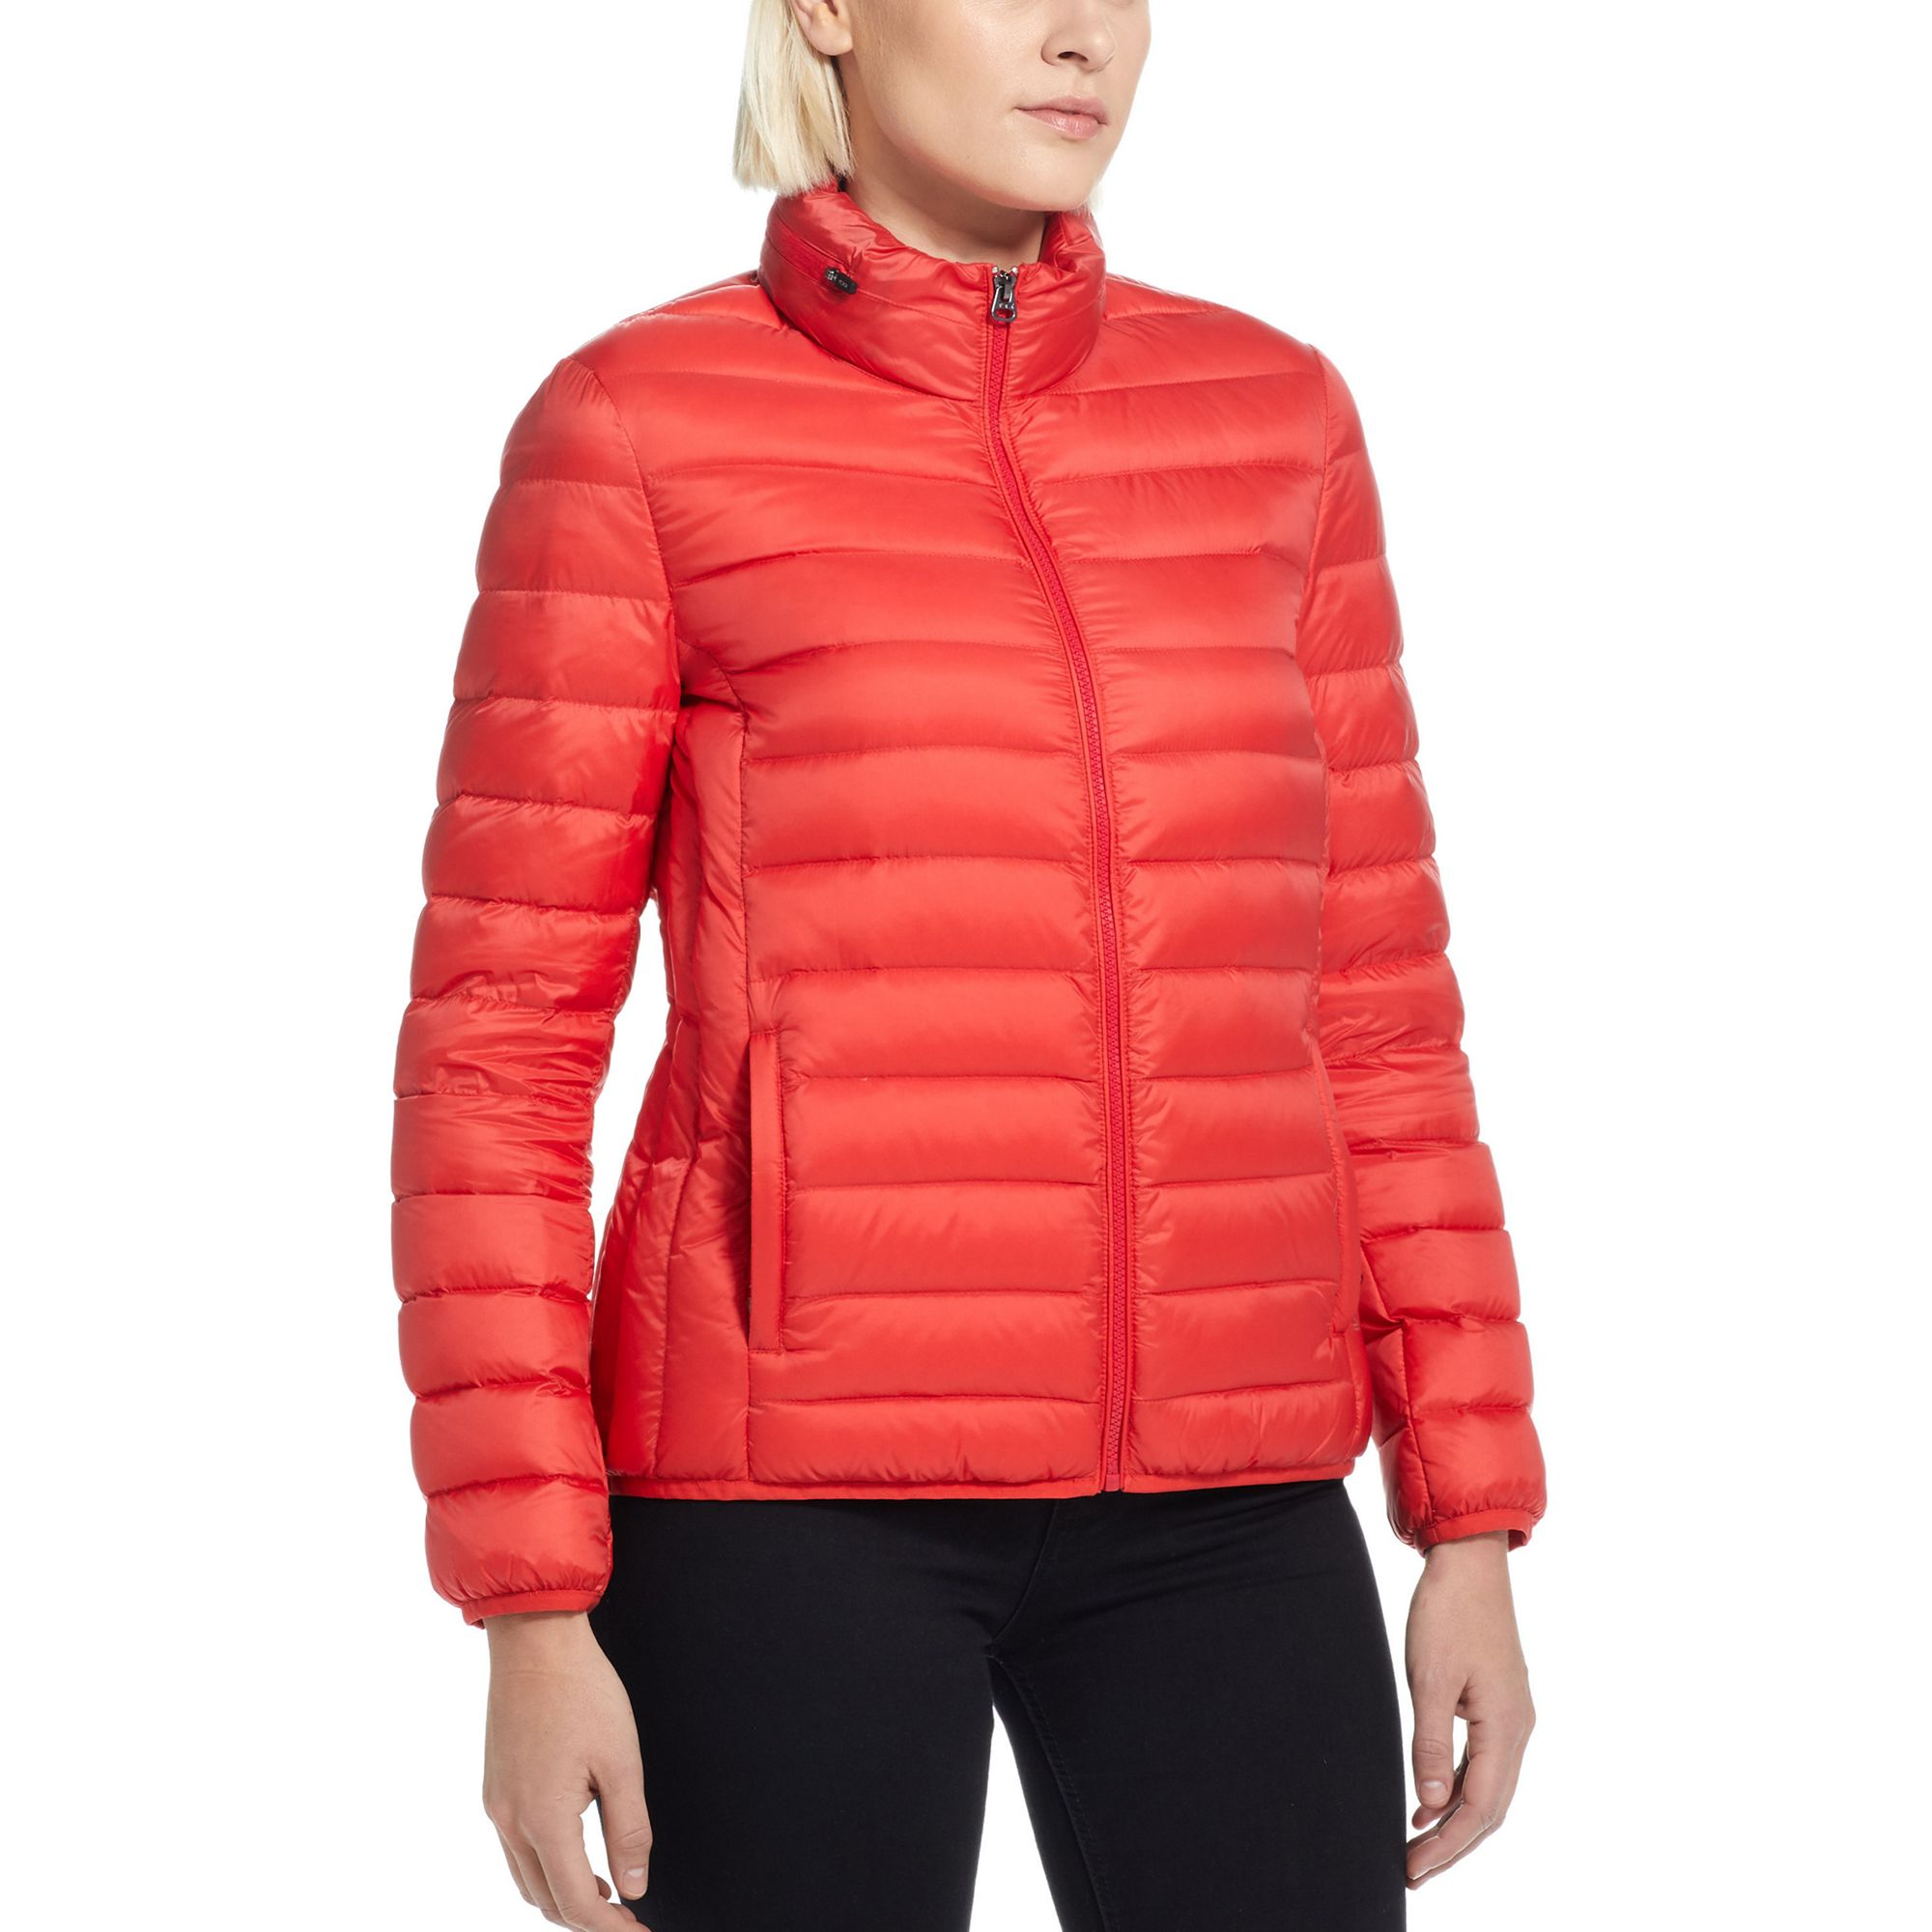 Outerwear Womens TUMIPAX Clairmont Packable Travel Puffer Jacket by TUMI (Color: Red, Size: XL)